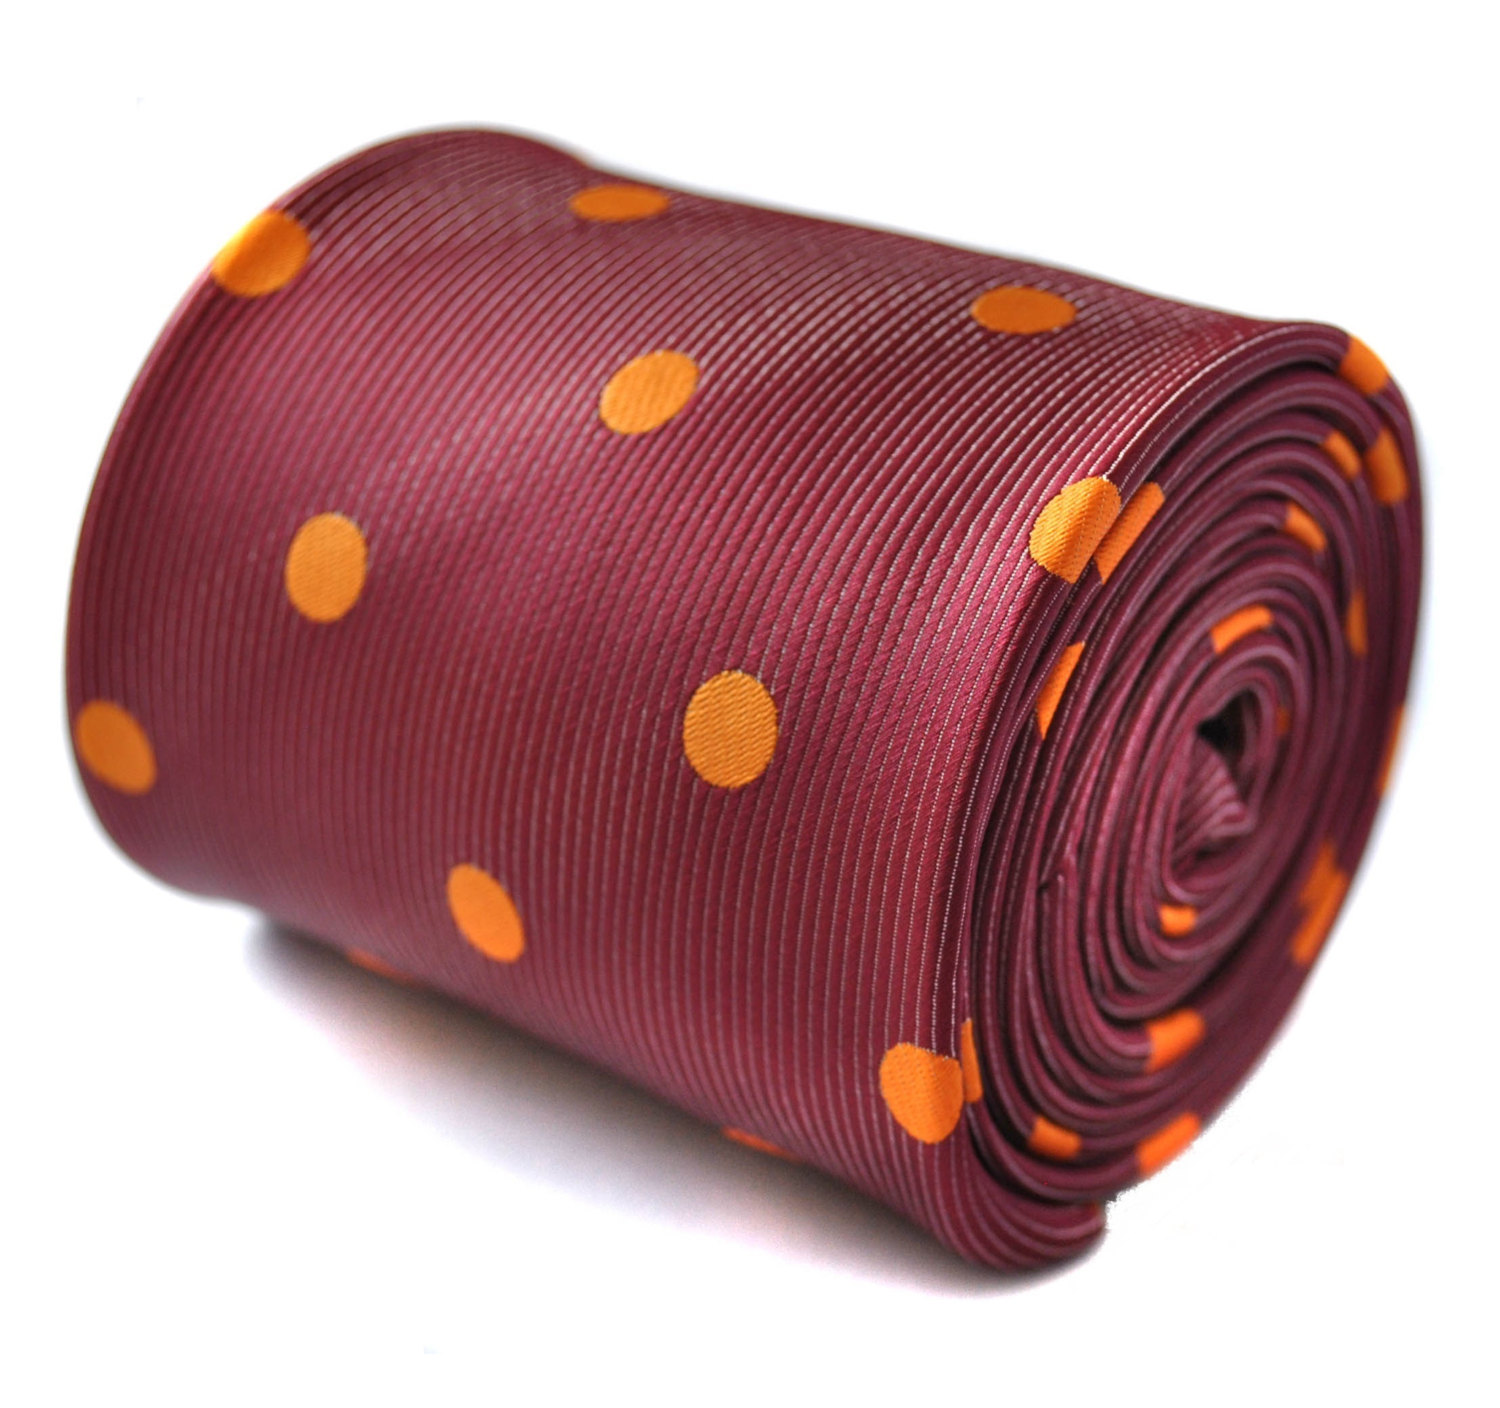 maroon and orange polka spot tie with signature floral design to the rear by Fre